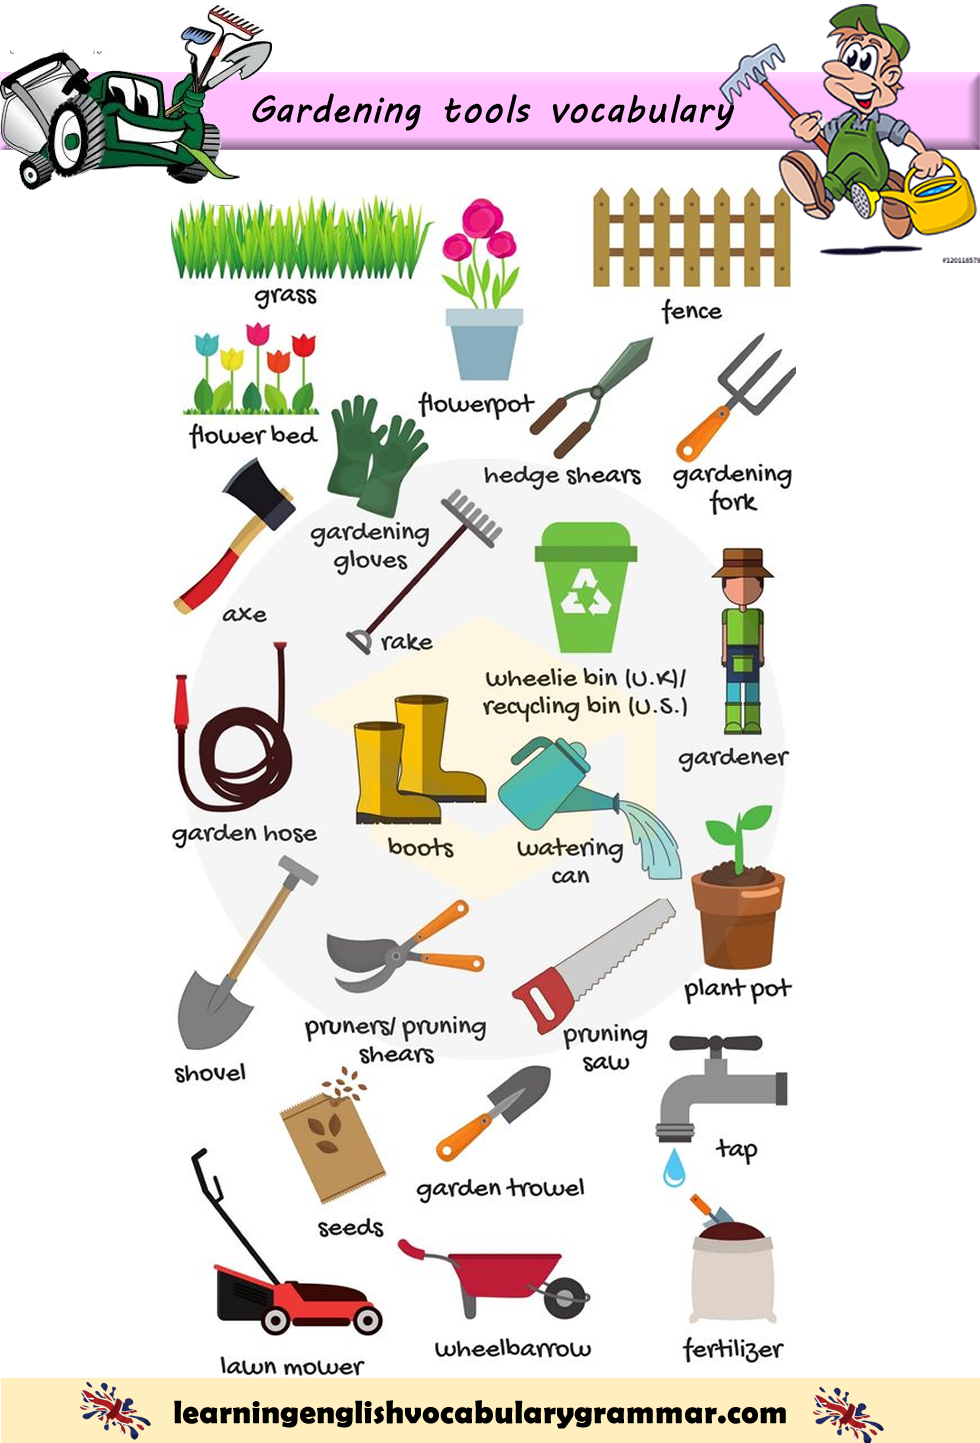 Gardening Tools Vocabulary List With Pictures And Names